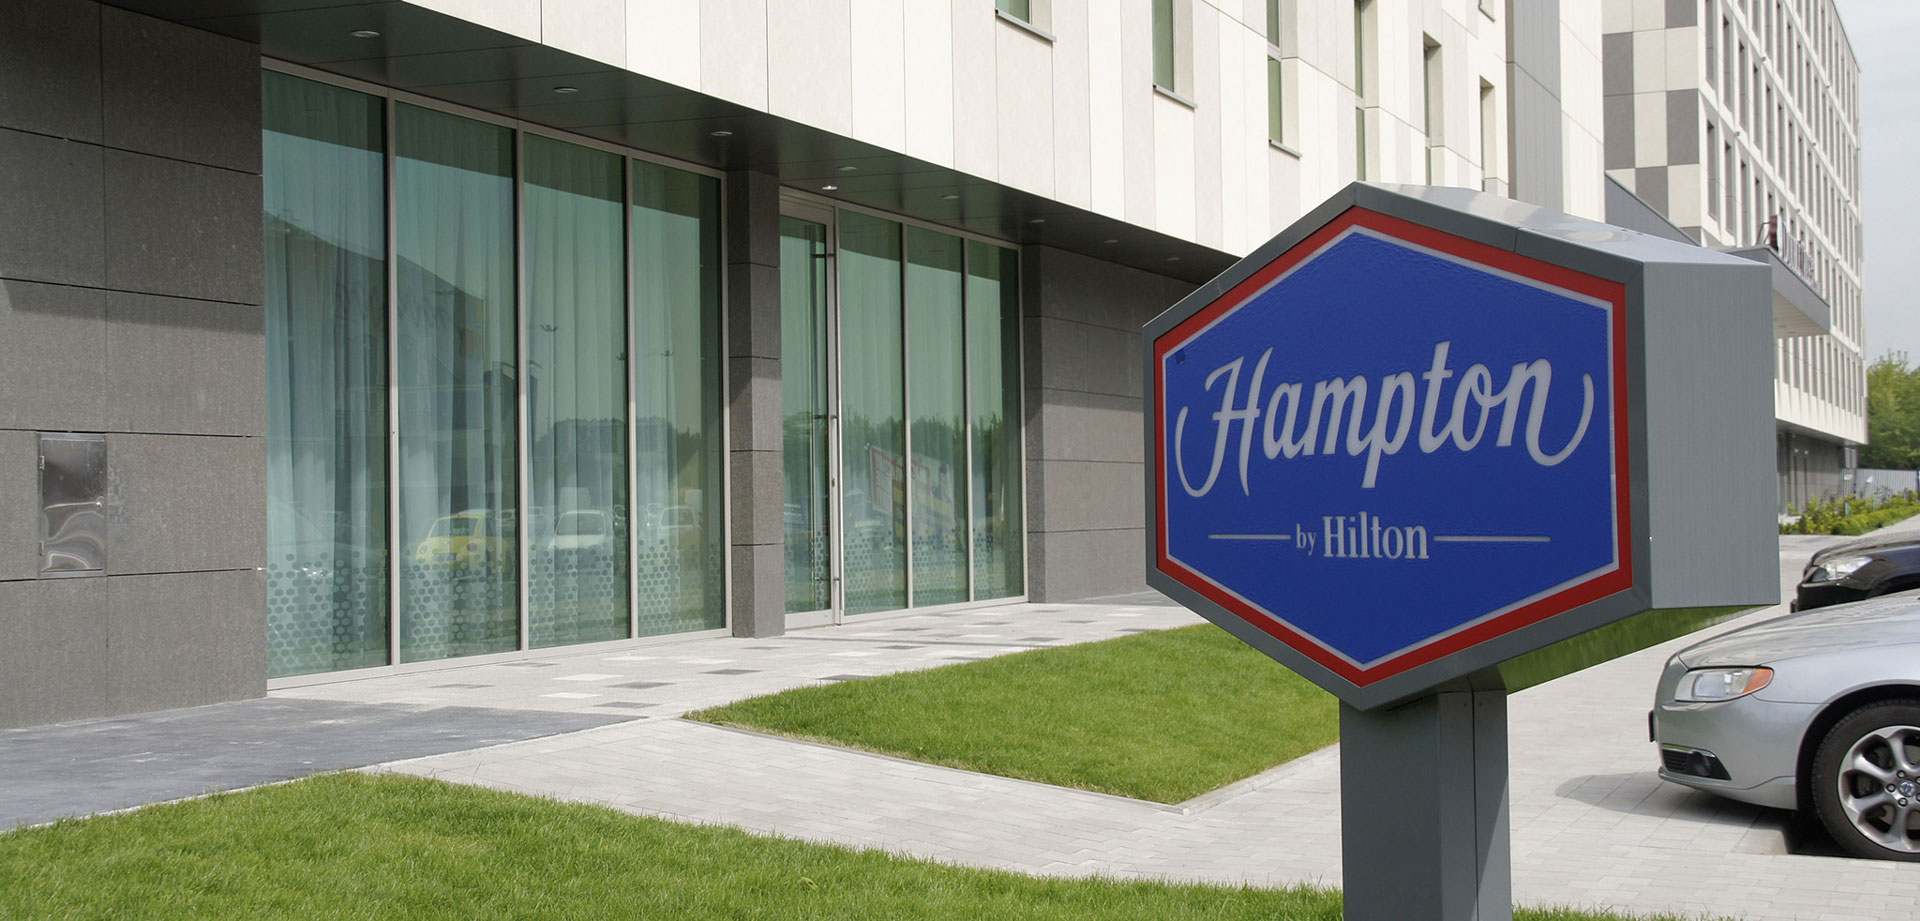 Meet the world's largest Hampton by Hilton Hotel